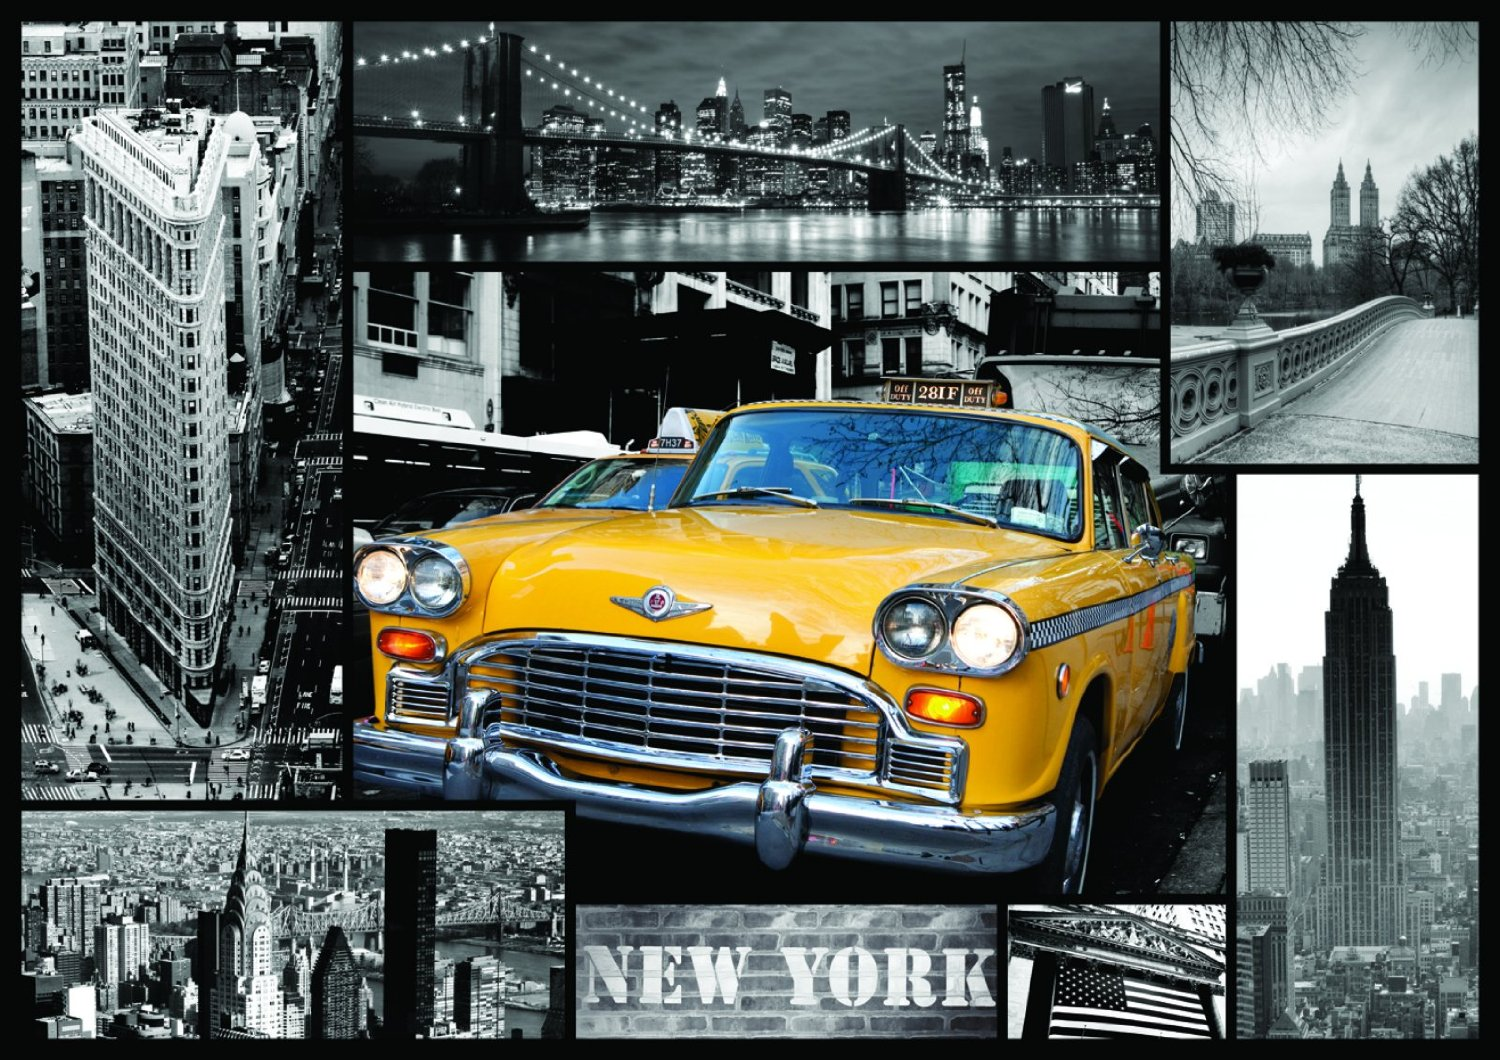 Trefl JigsawPuzzle 1000 Pieces by Trefl Games & Puzzles Poland yellow new york taxi cab new-york-taxi-collage